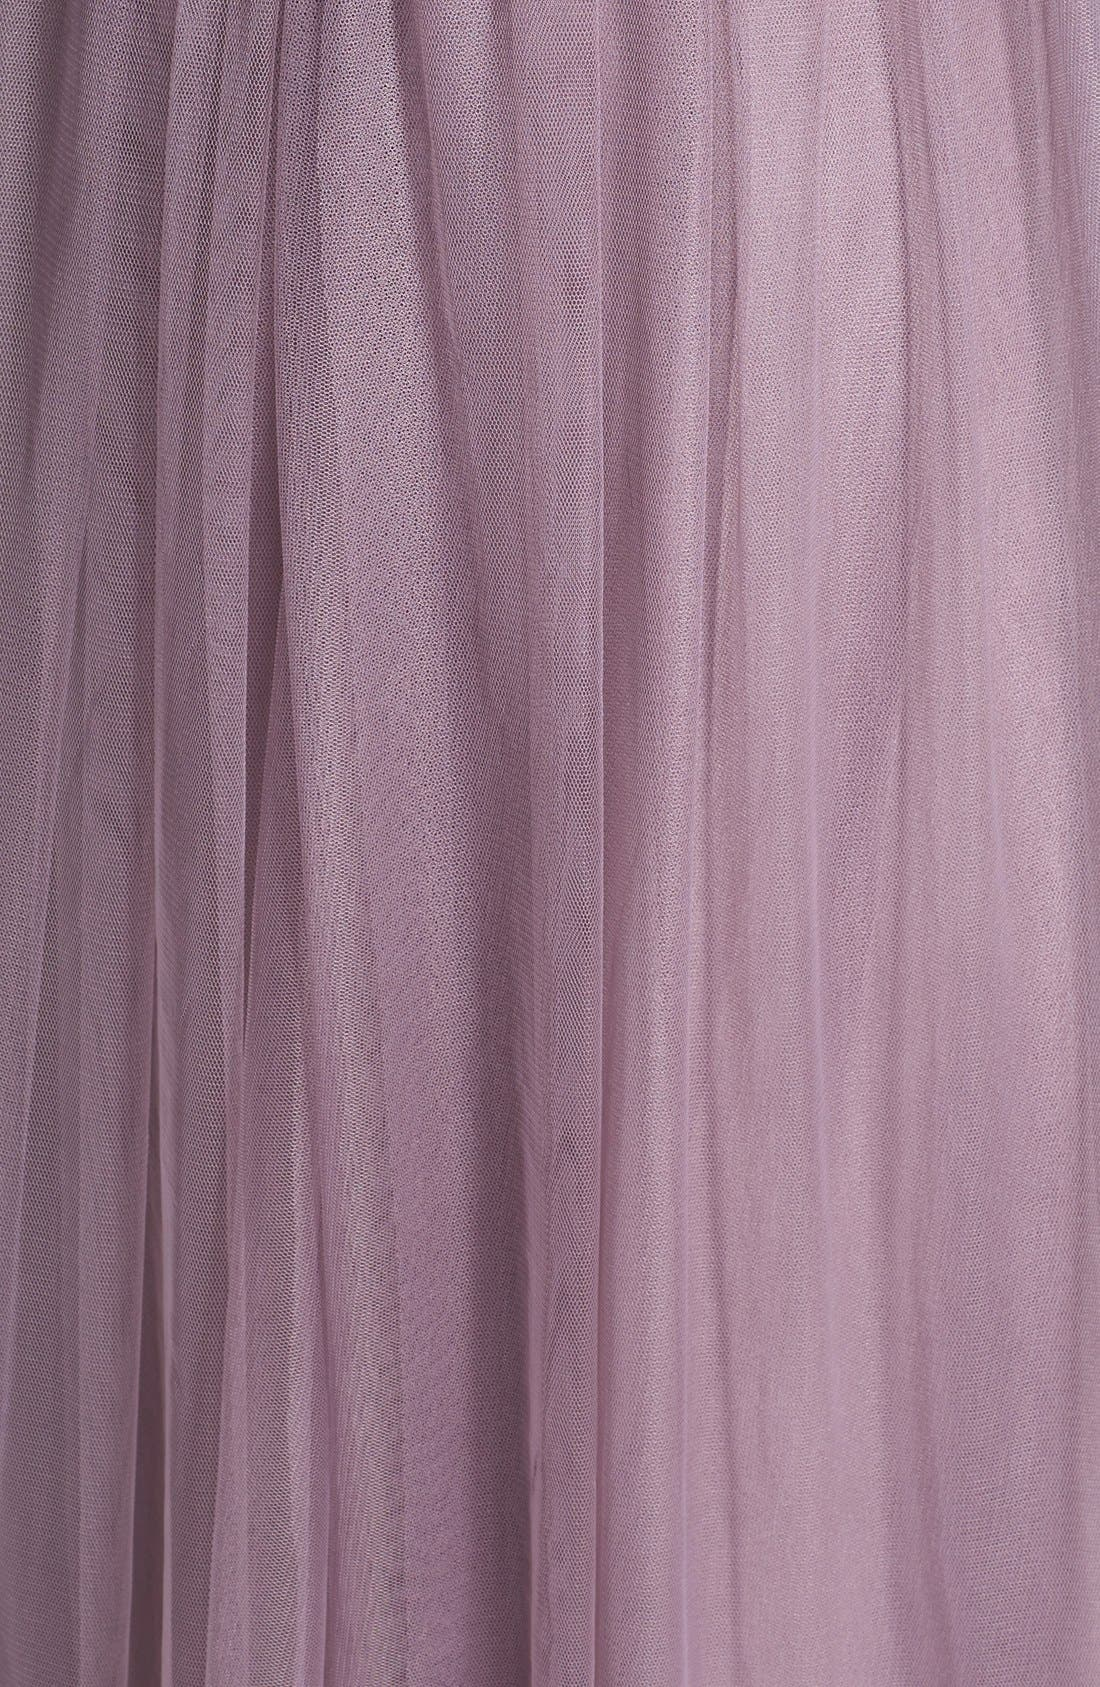 Annabelle Convertible Tulle Column Dress,                             Alternate thumbnail 192, color,